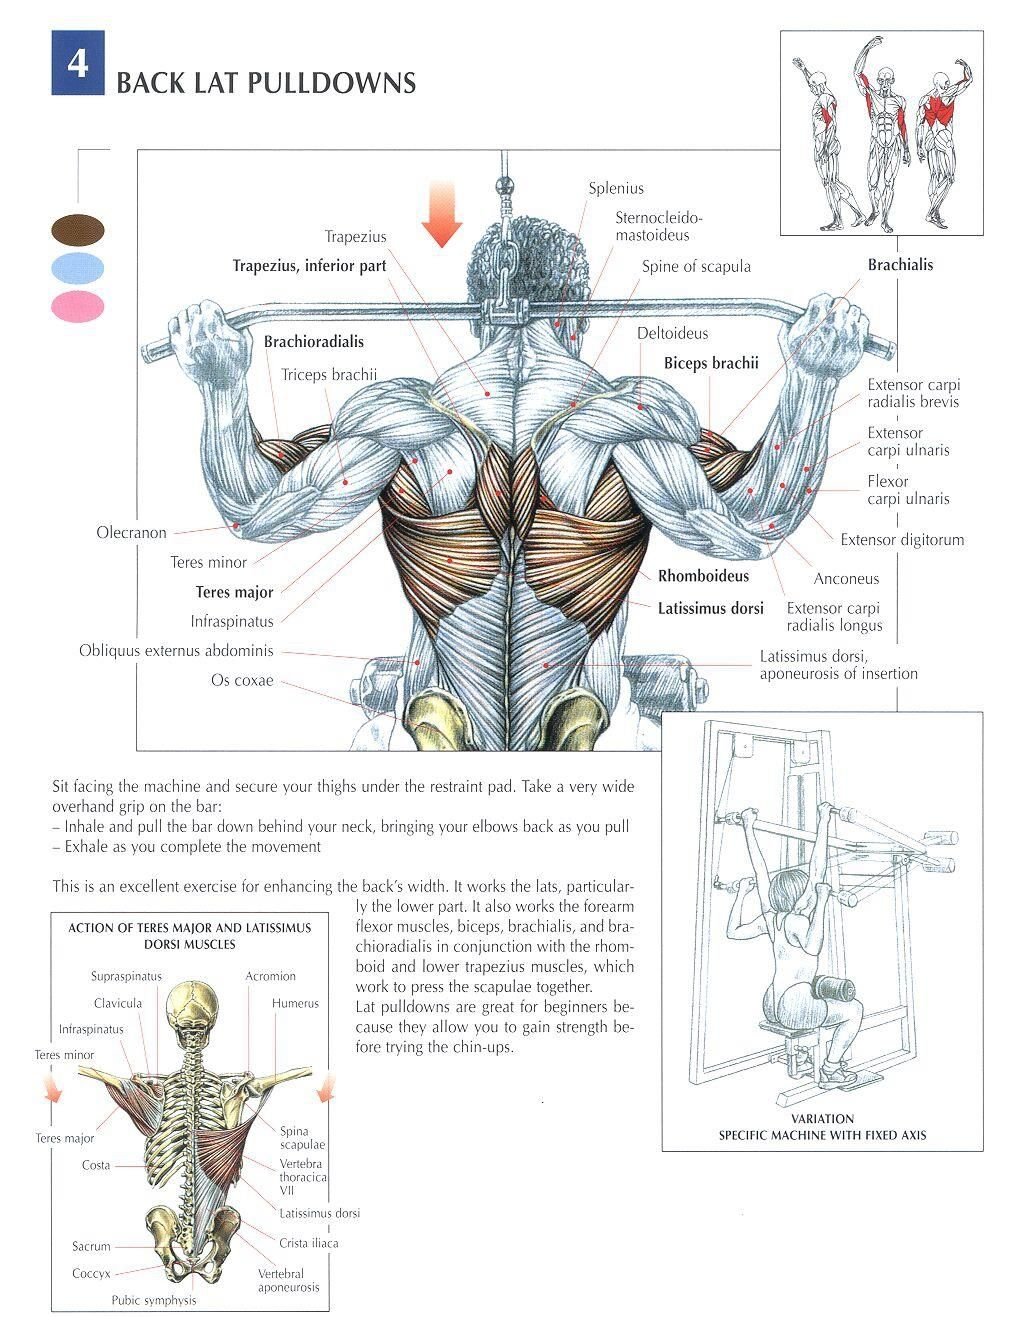 5 Tips for Building Muscle! | Pinterest | Iron, Workout and Arm muscles